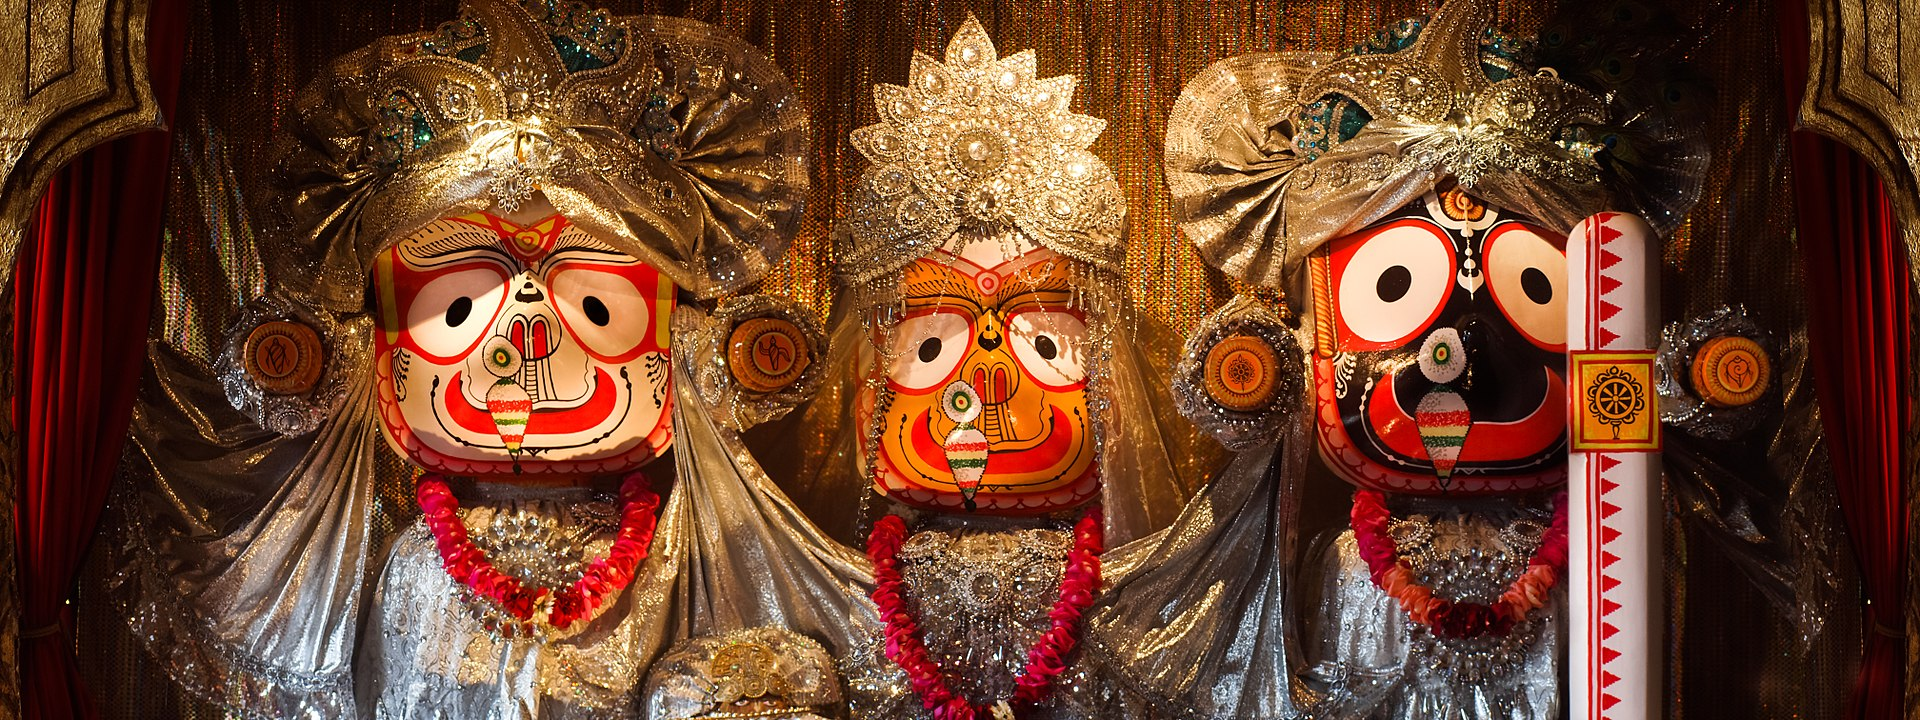 Lord Jagannath and The Puri Temple